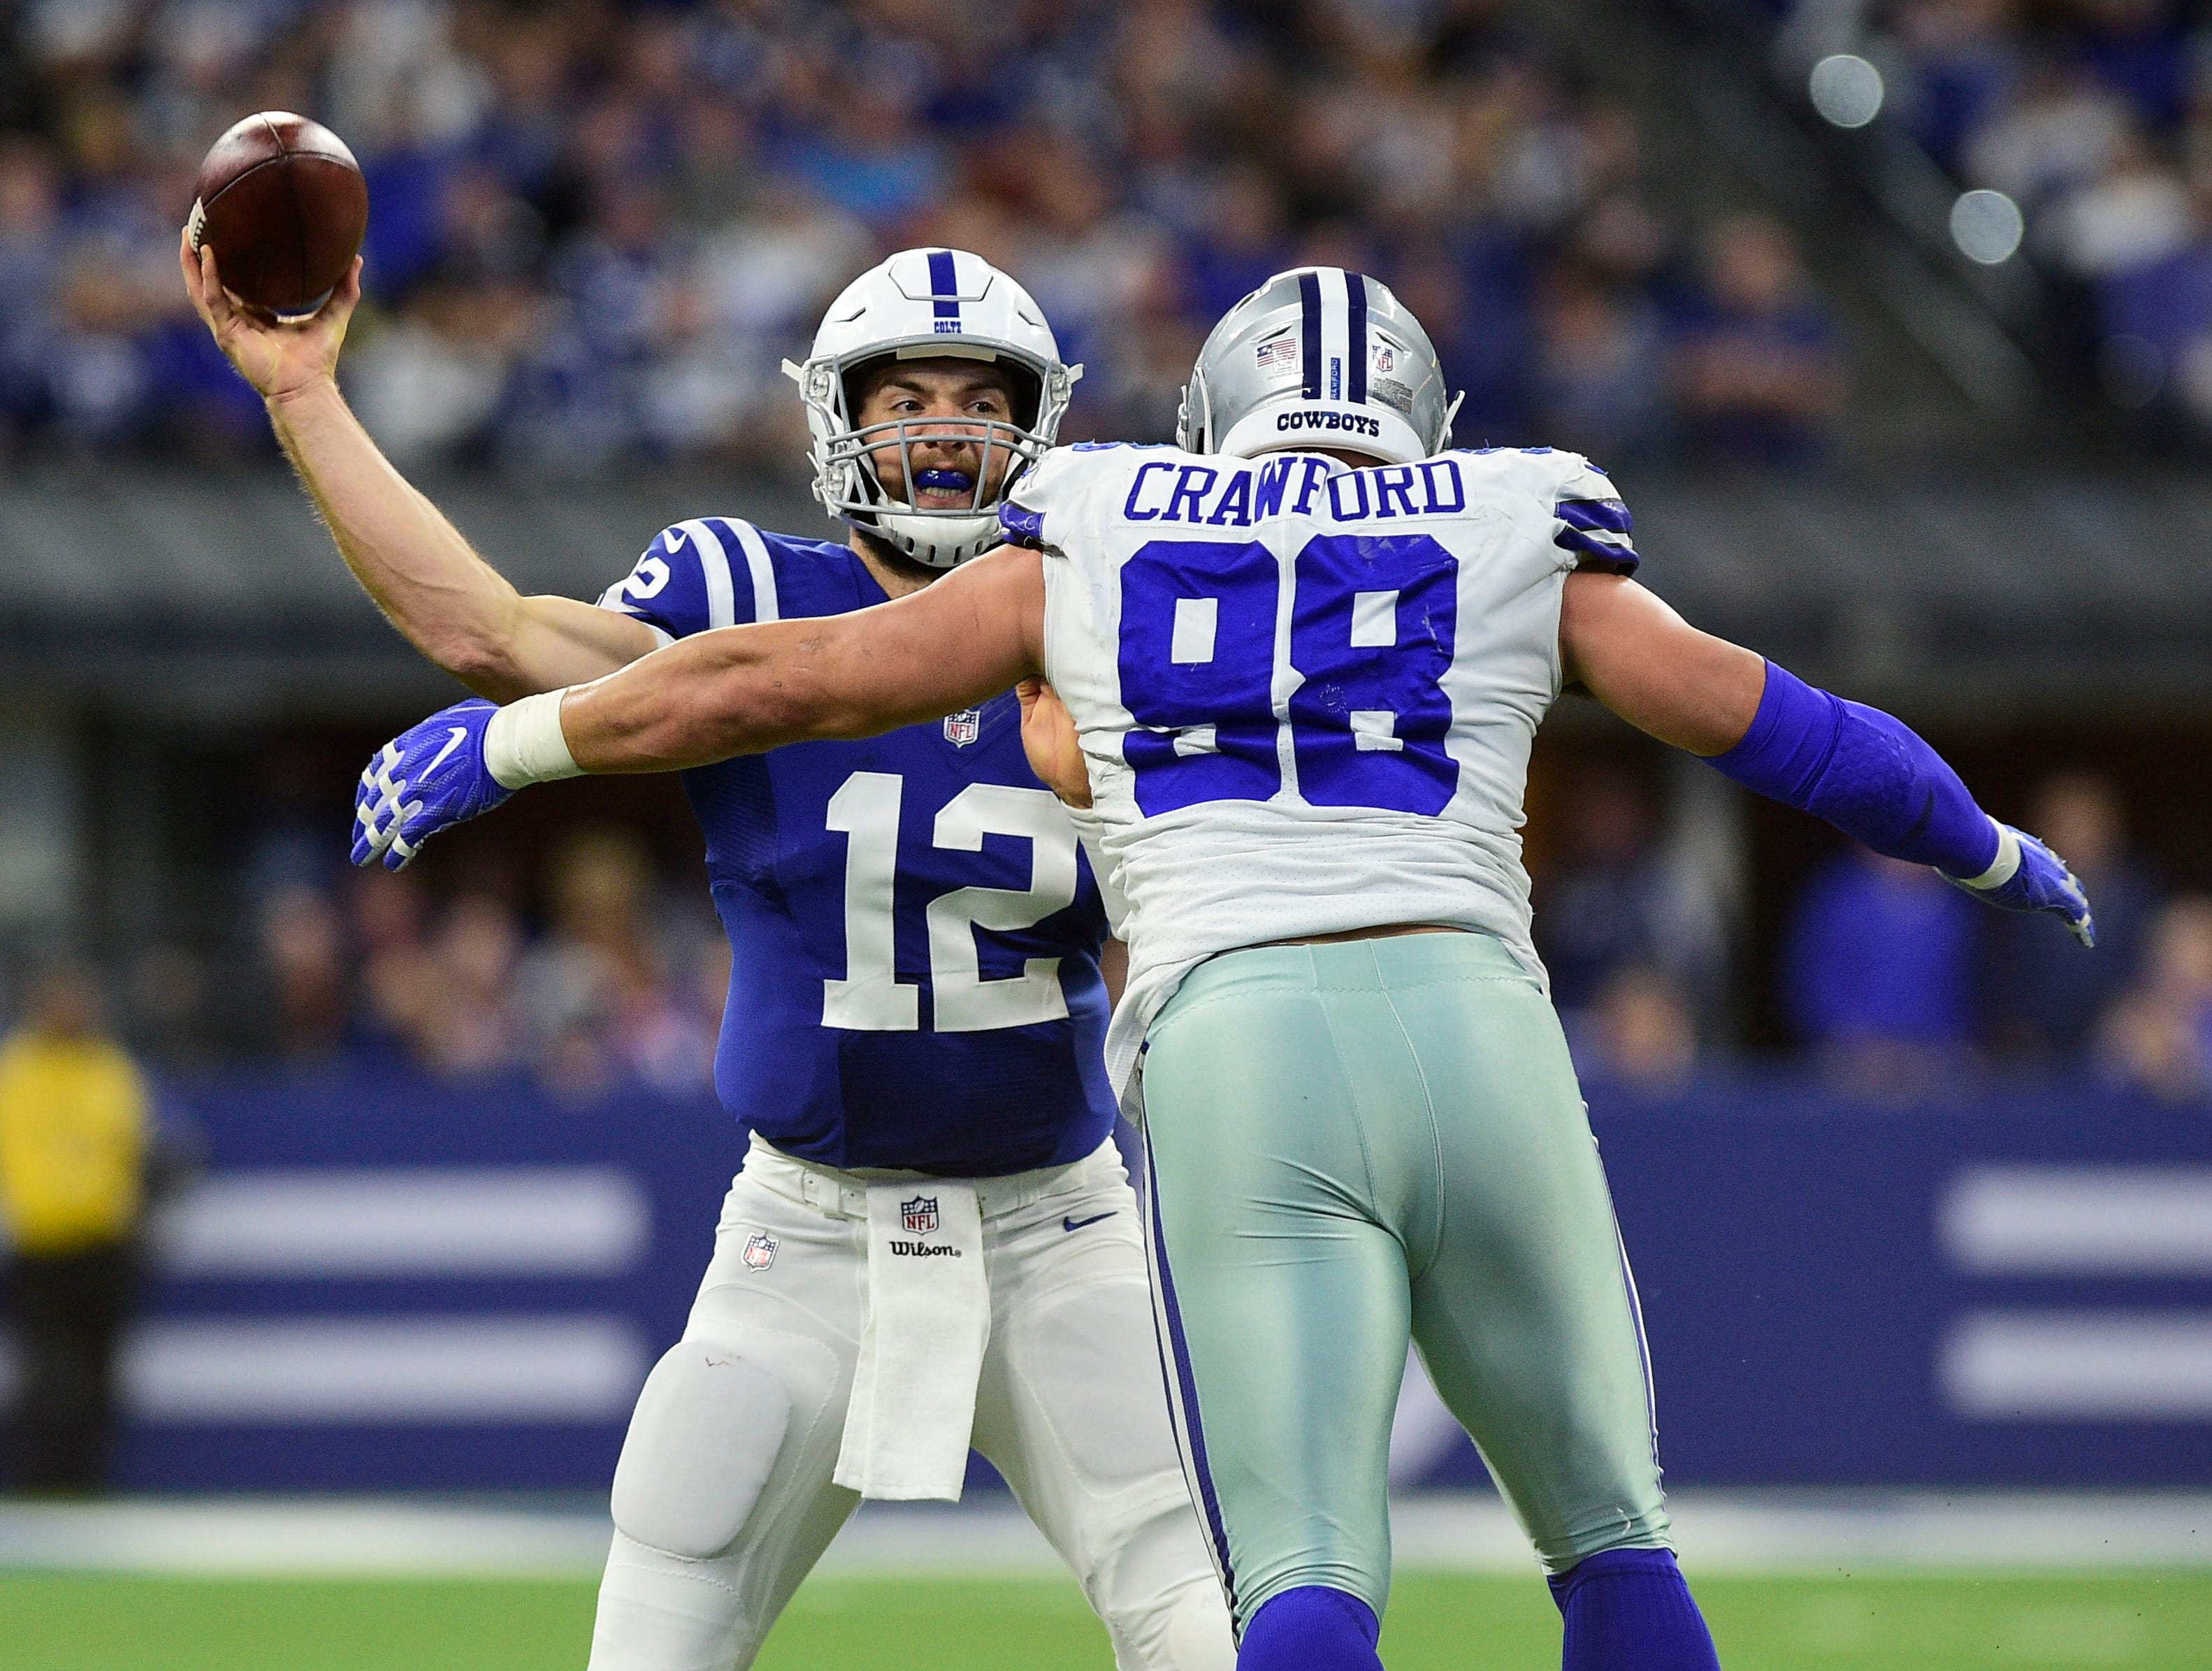 Indianapolis Colts quarterback Andrew Luck (12) drops back to pass in the second half against Dallas Cowboys linebacker Tyrone Crawford (98) at Lucas Oil Stadium.